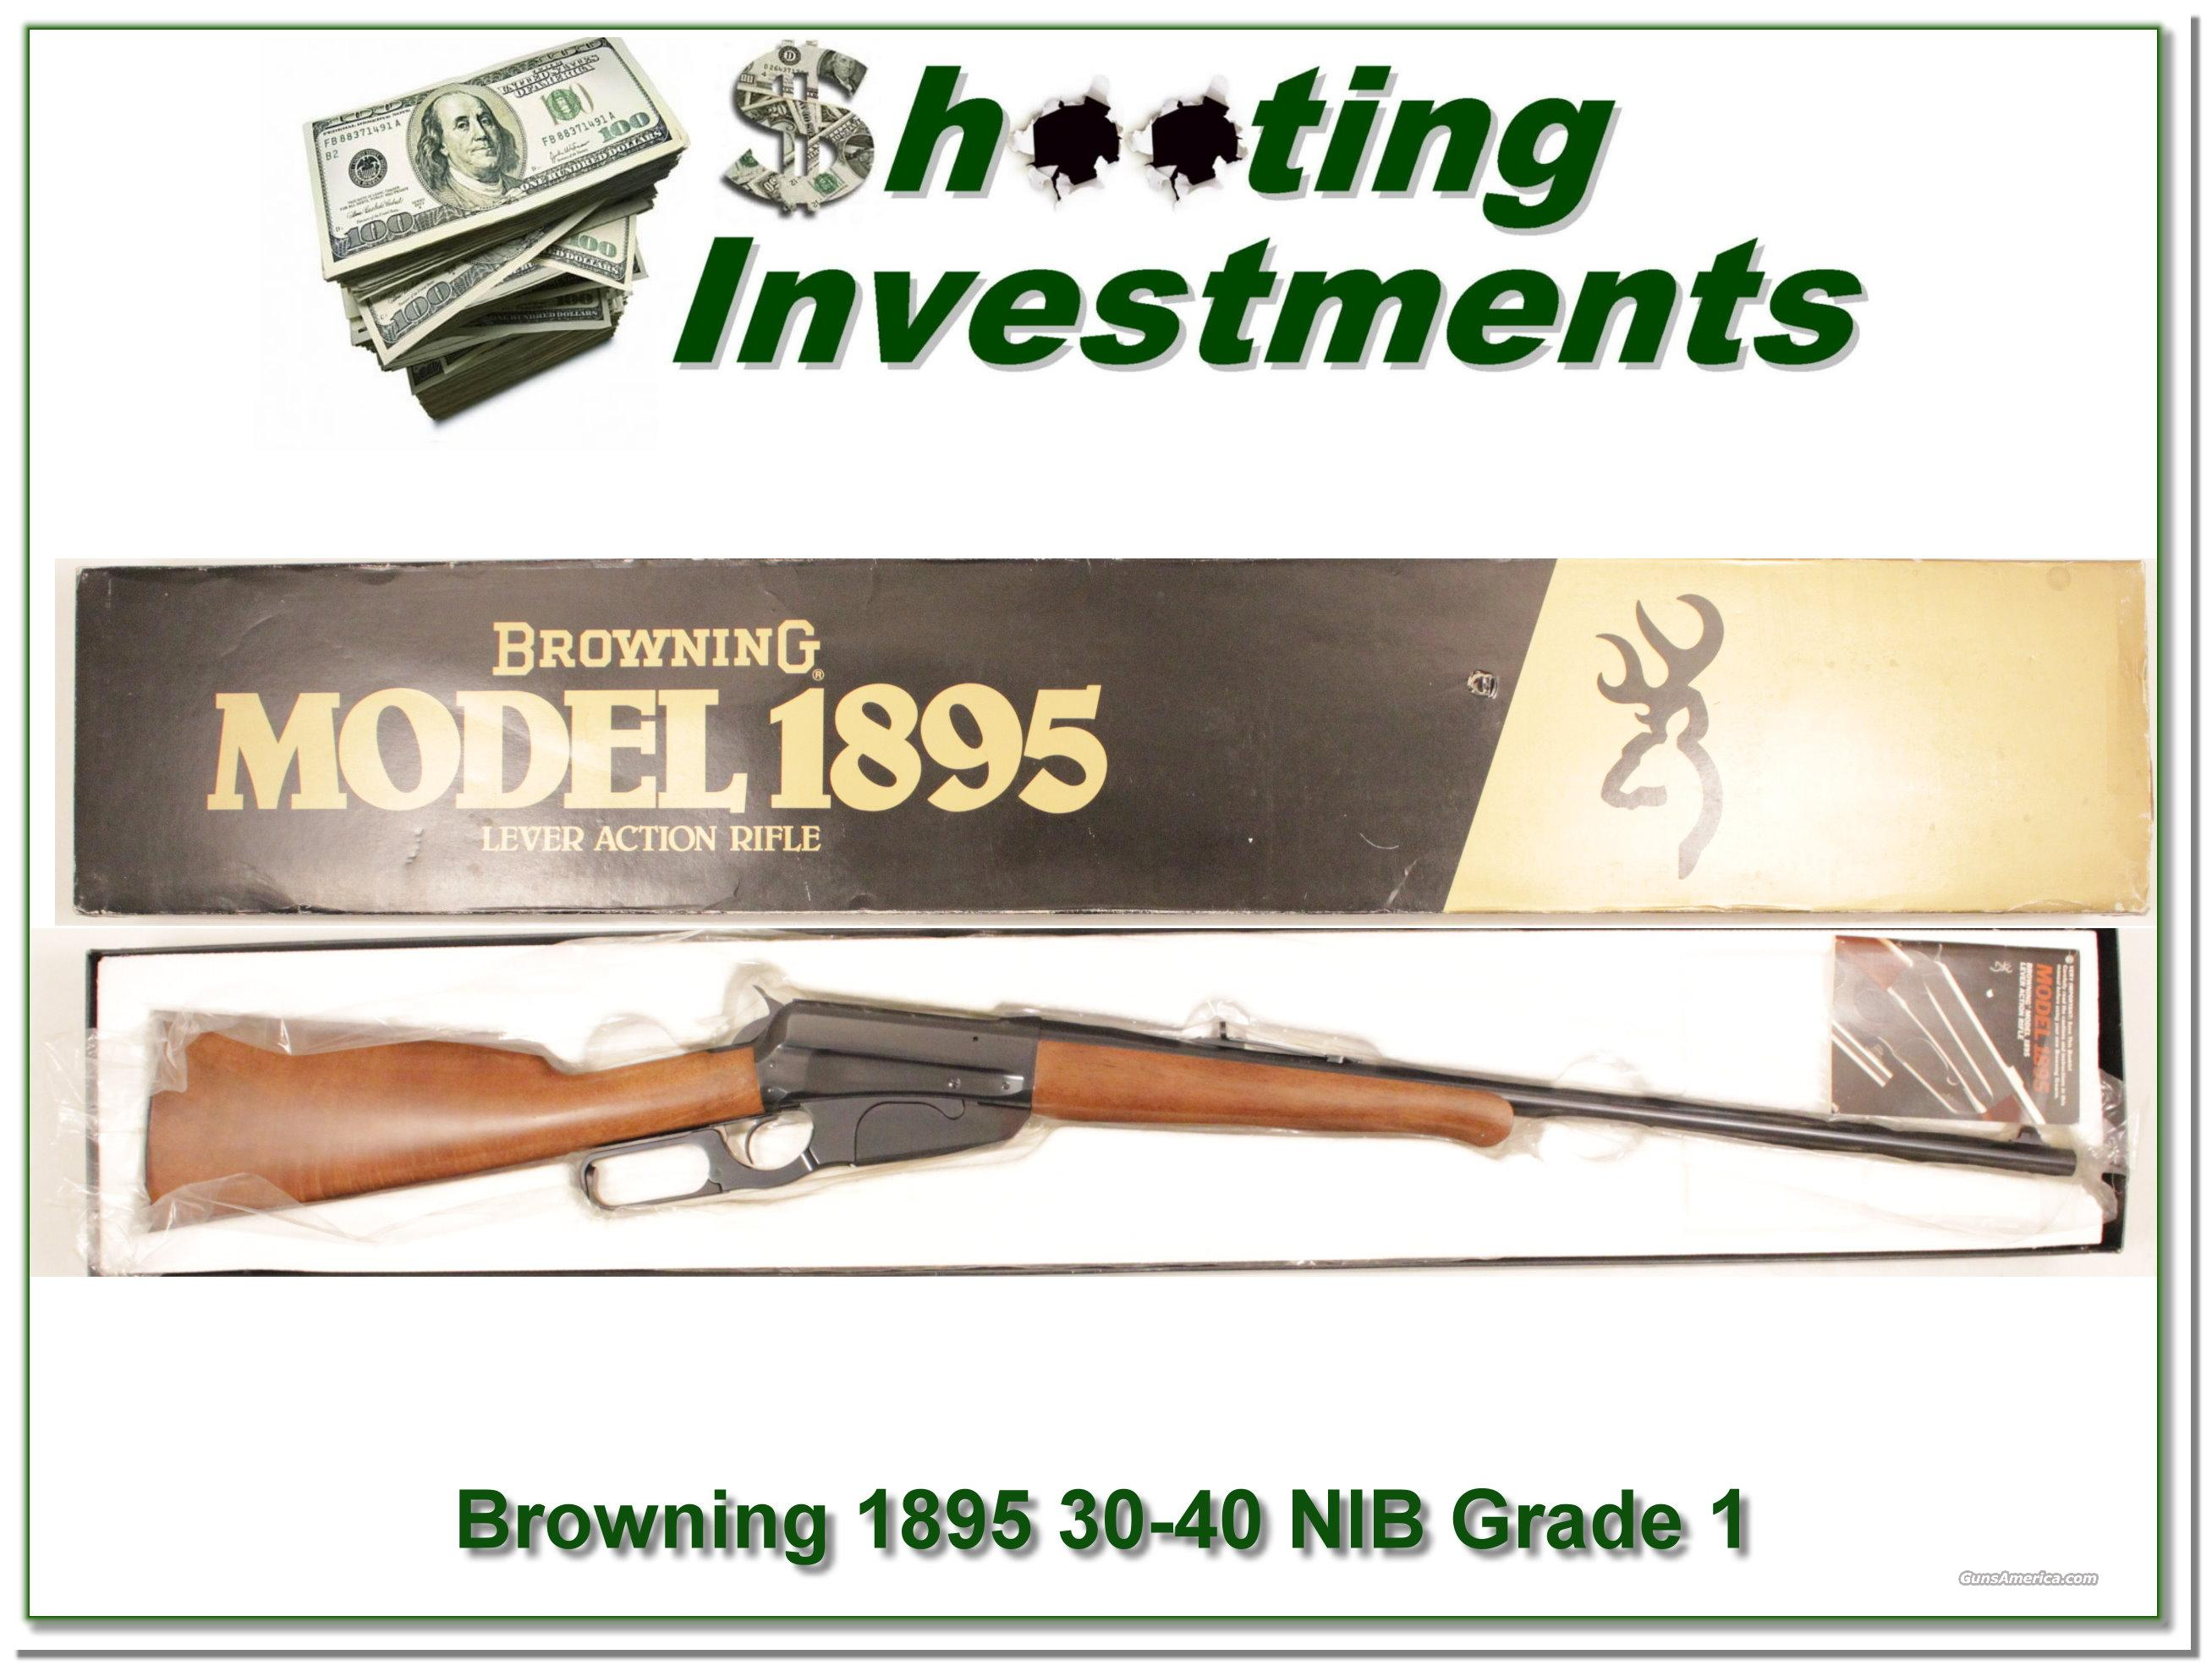 Browning 1895 30-40 Krag Unfired in box!  Guns > Rifles > Browning Rifles > Lever Action